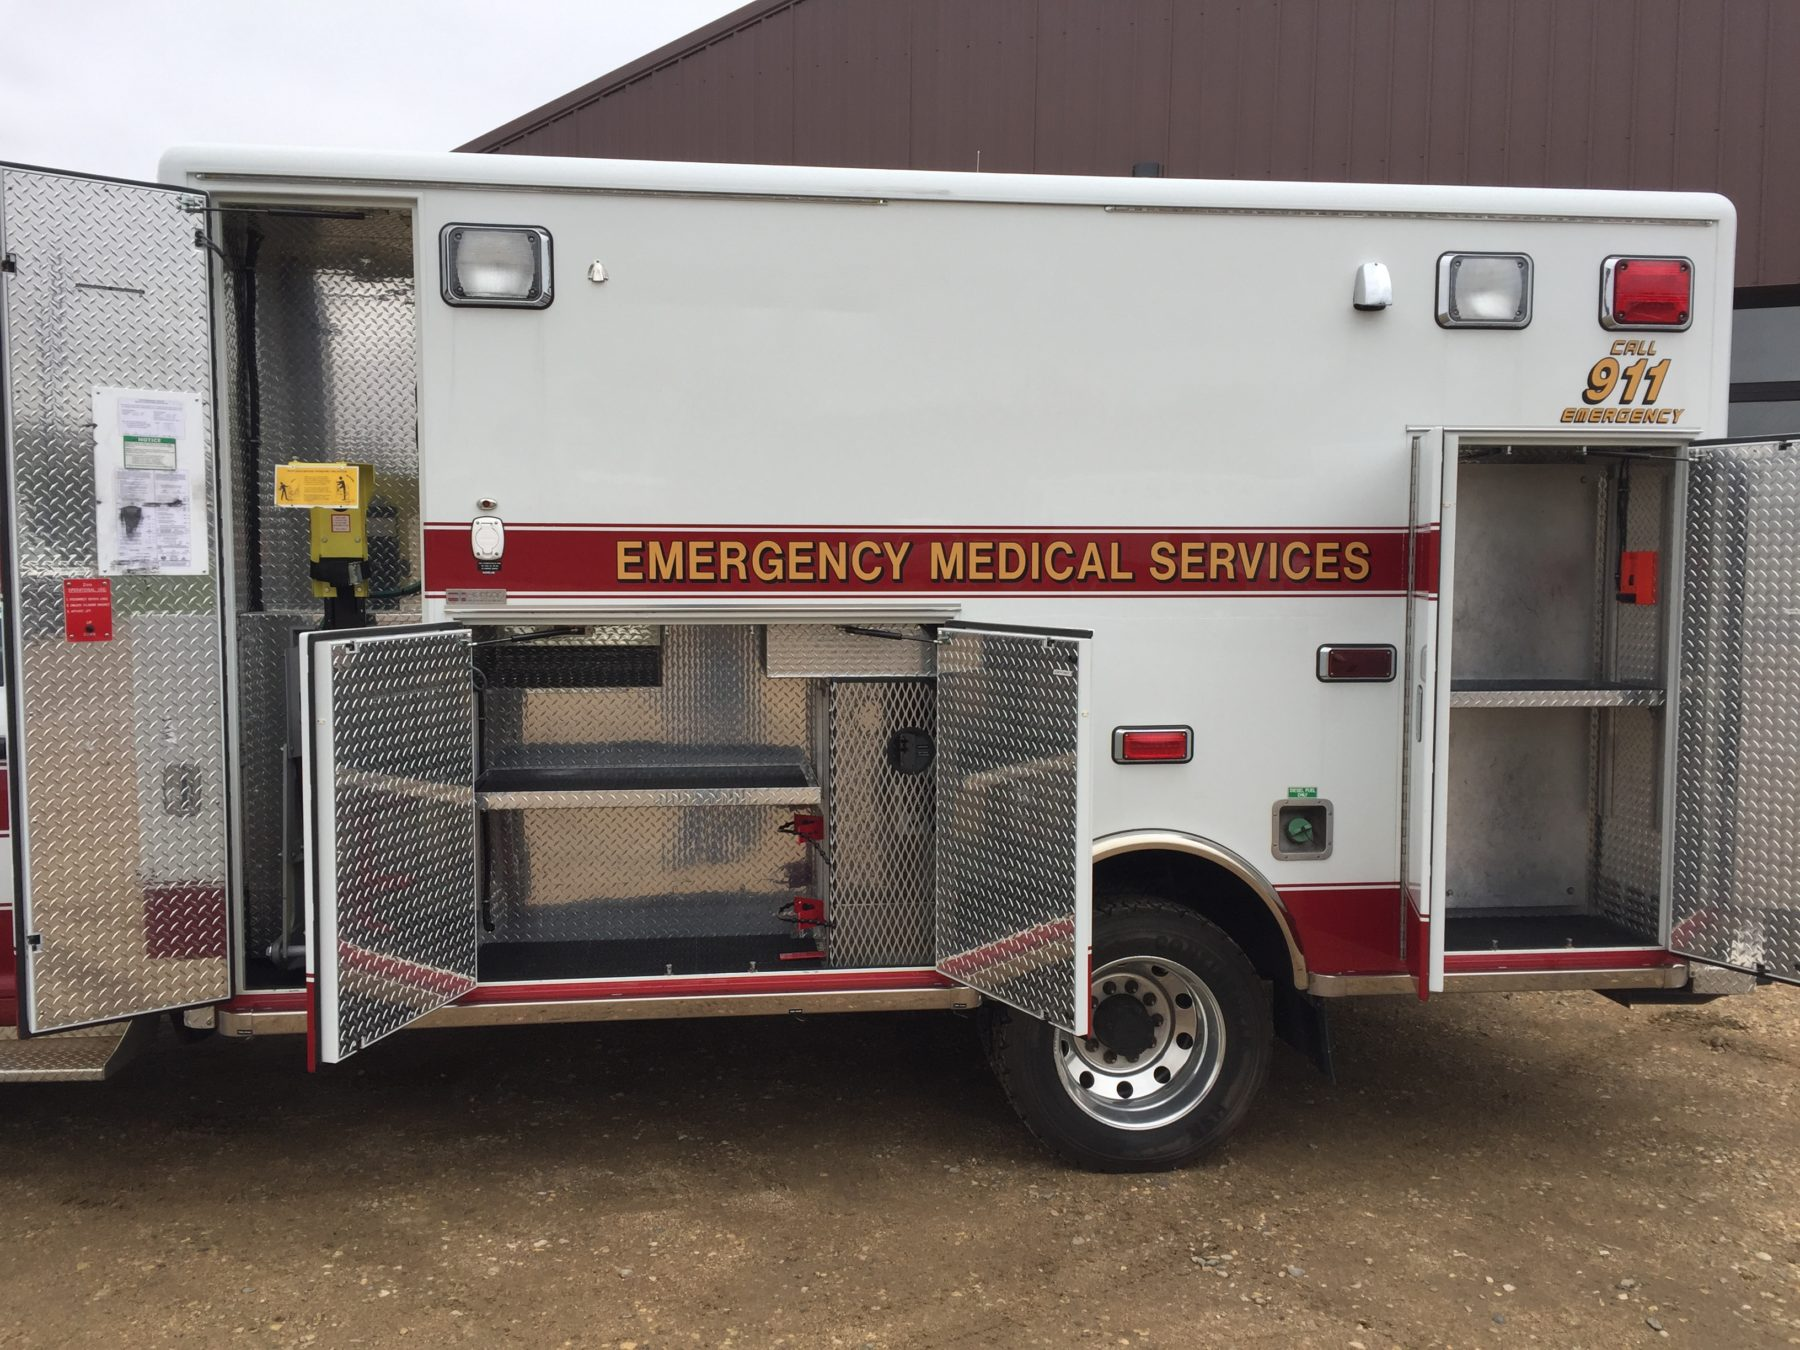 2012 Dodge 4500 Heavy Duty Ambulance For Sale – Picture 7